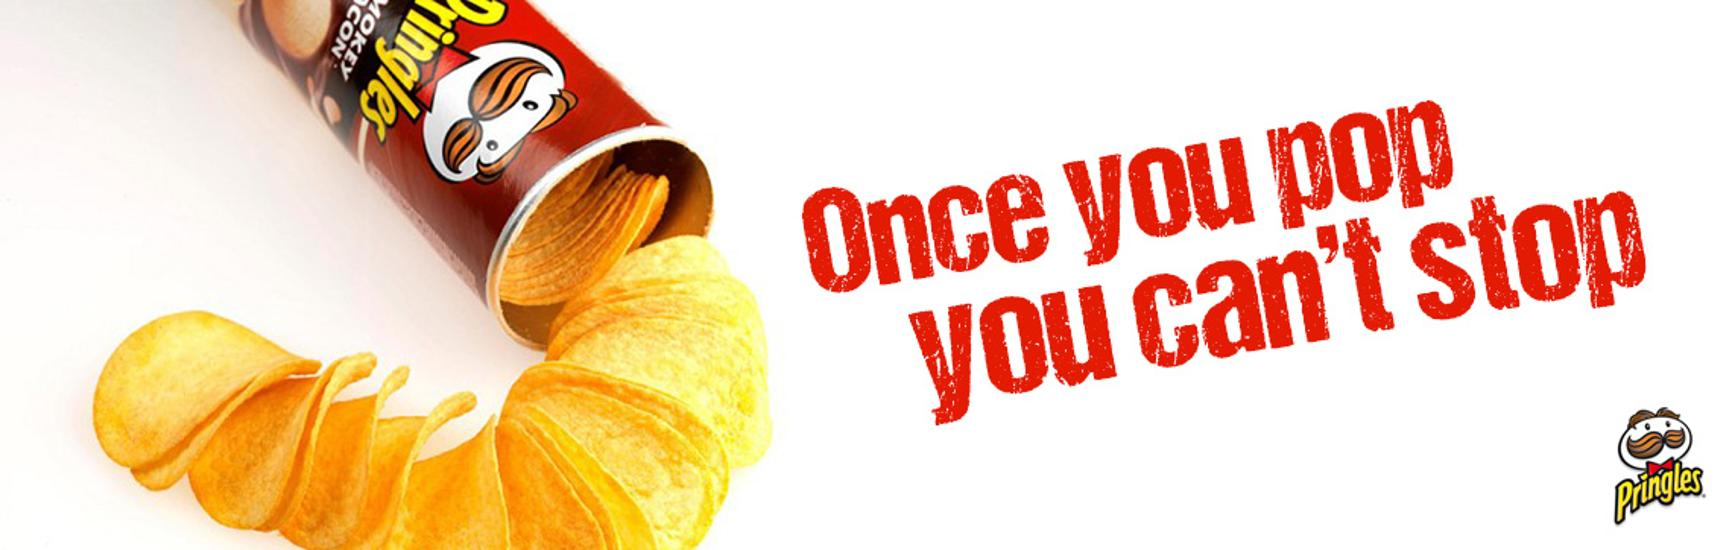 Pringles Chips Home Delivery @ ExpatShop Budapest